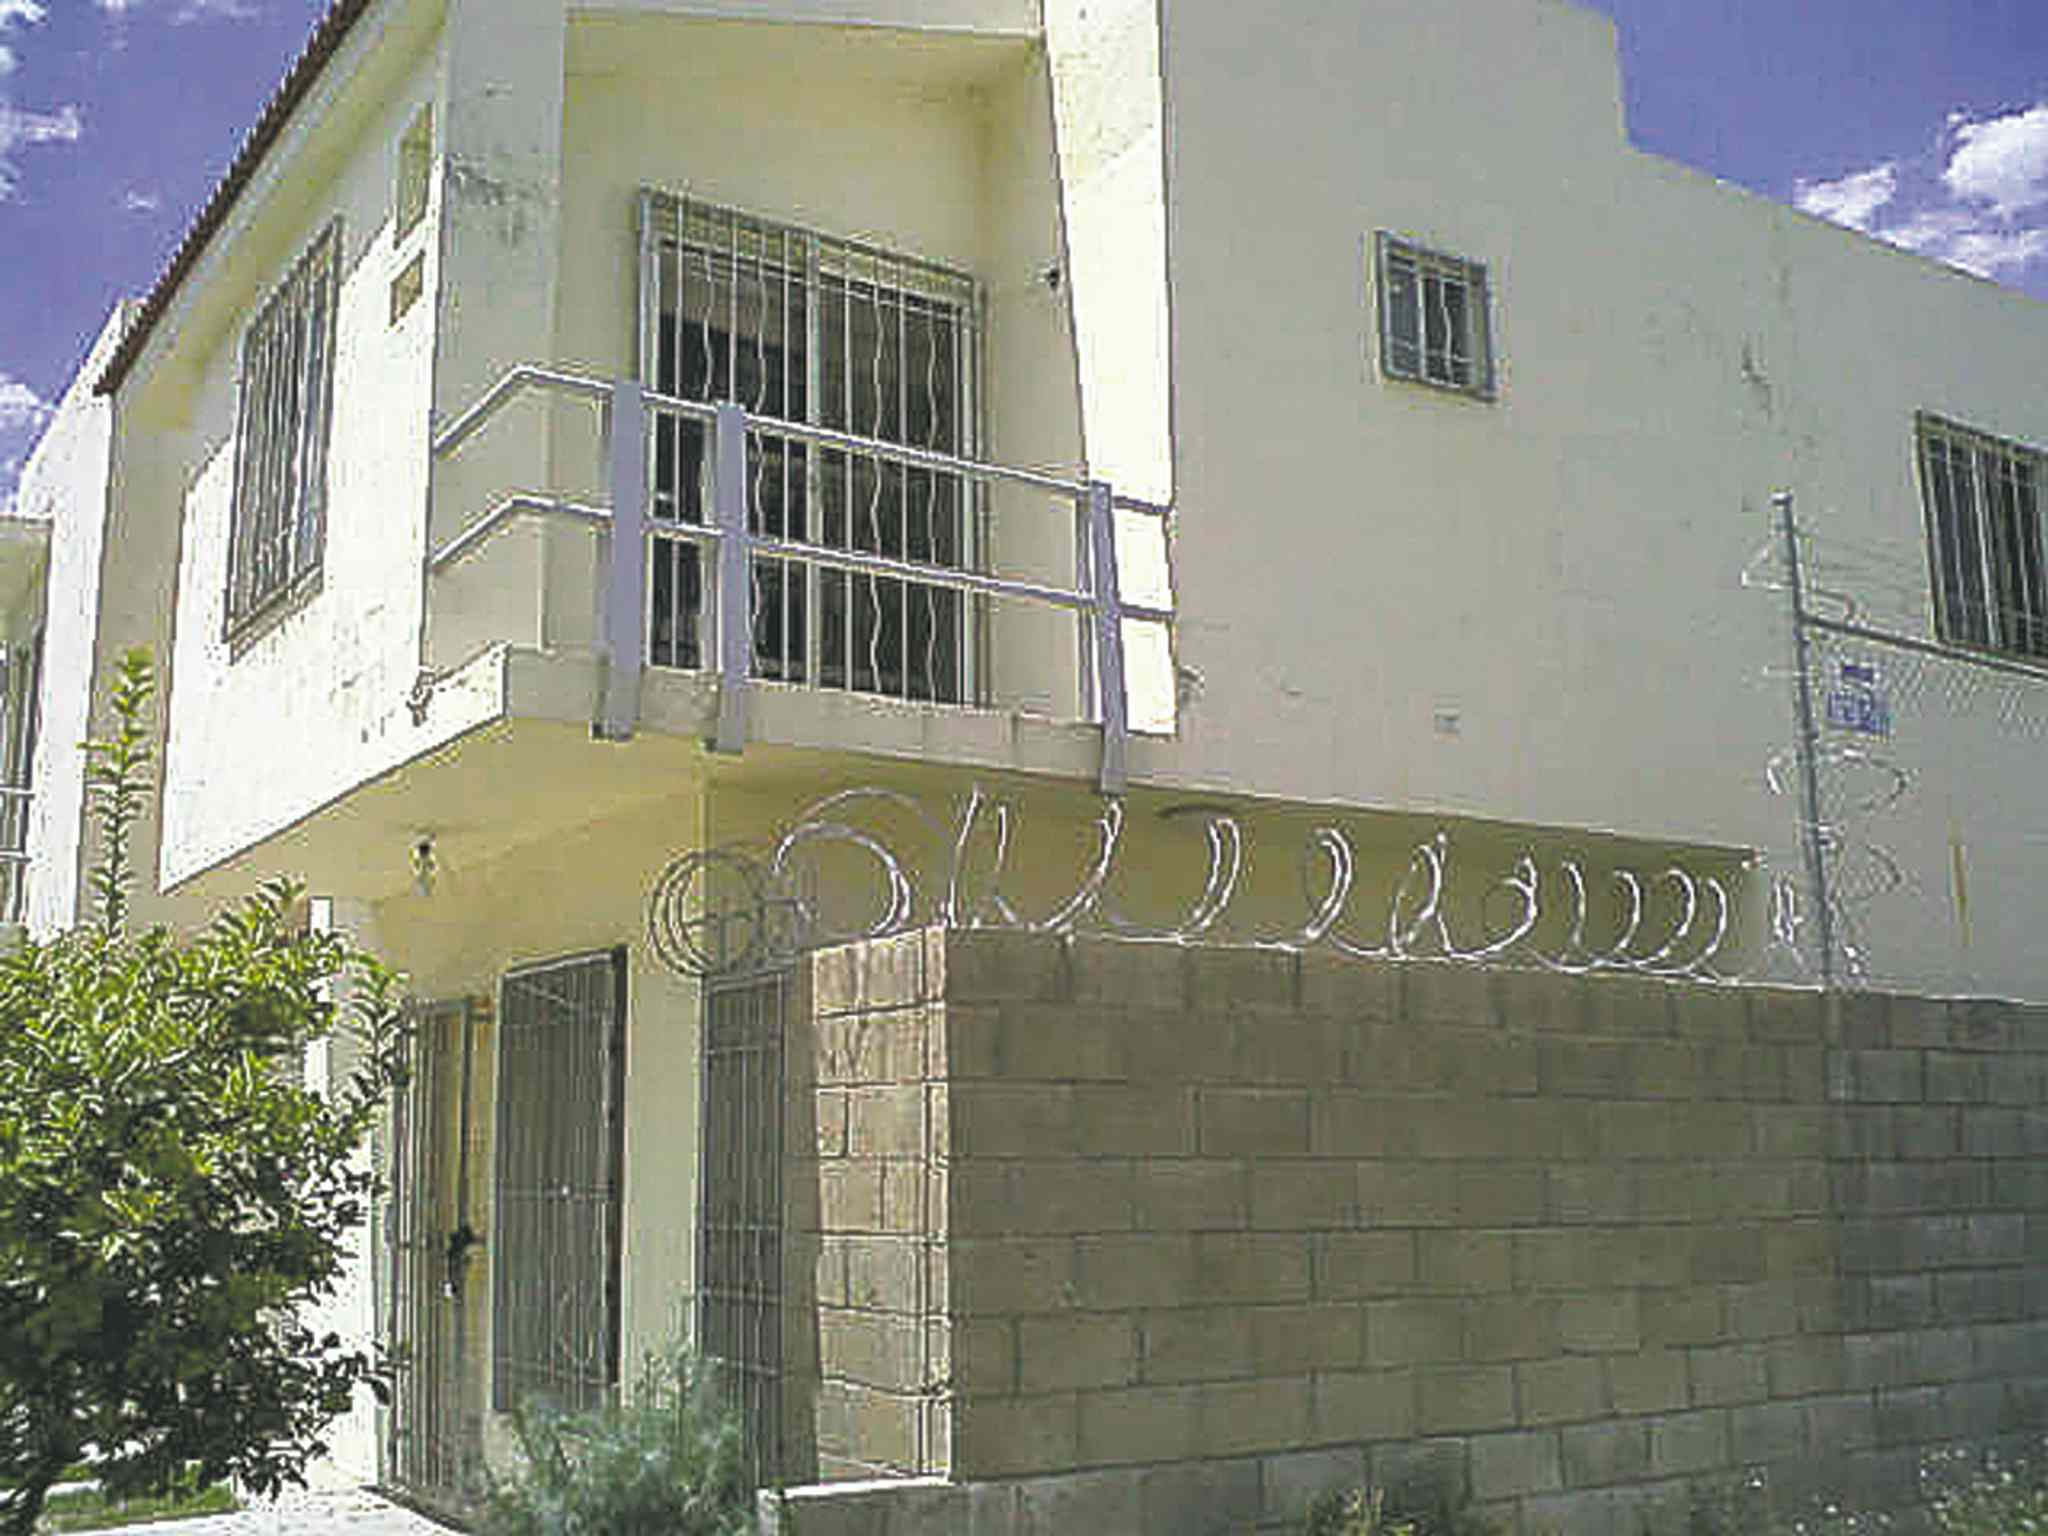 Dominic and Abby Maryk were found in this house in Mexico in 2012 after they were abducted by their father in 2008.